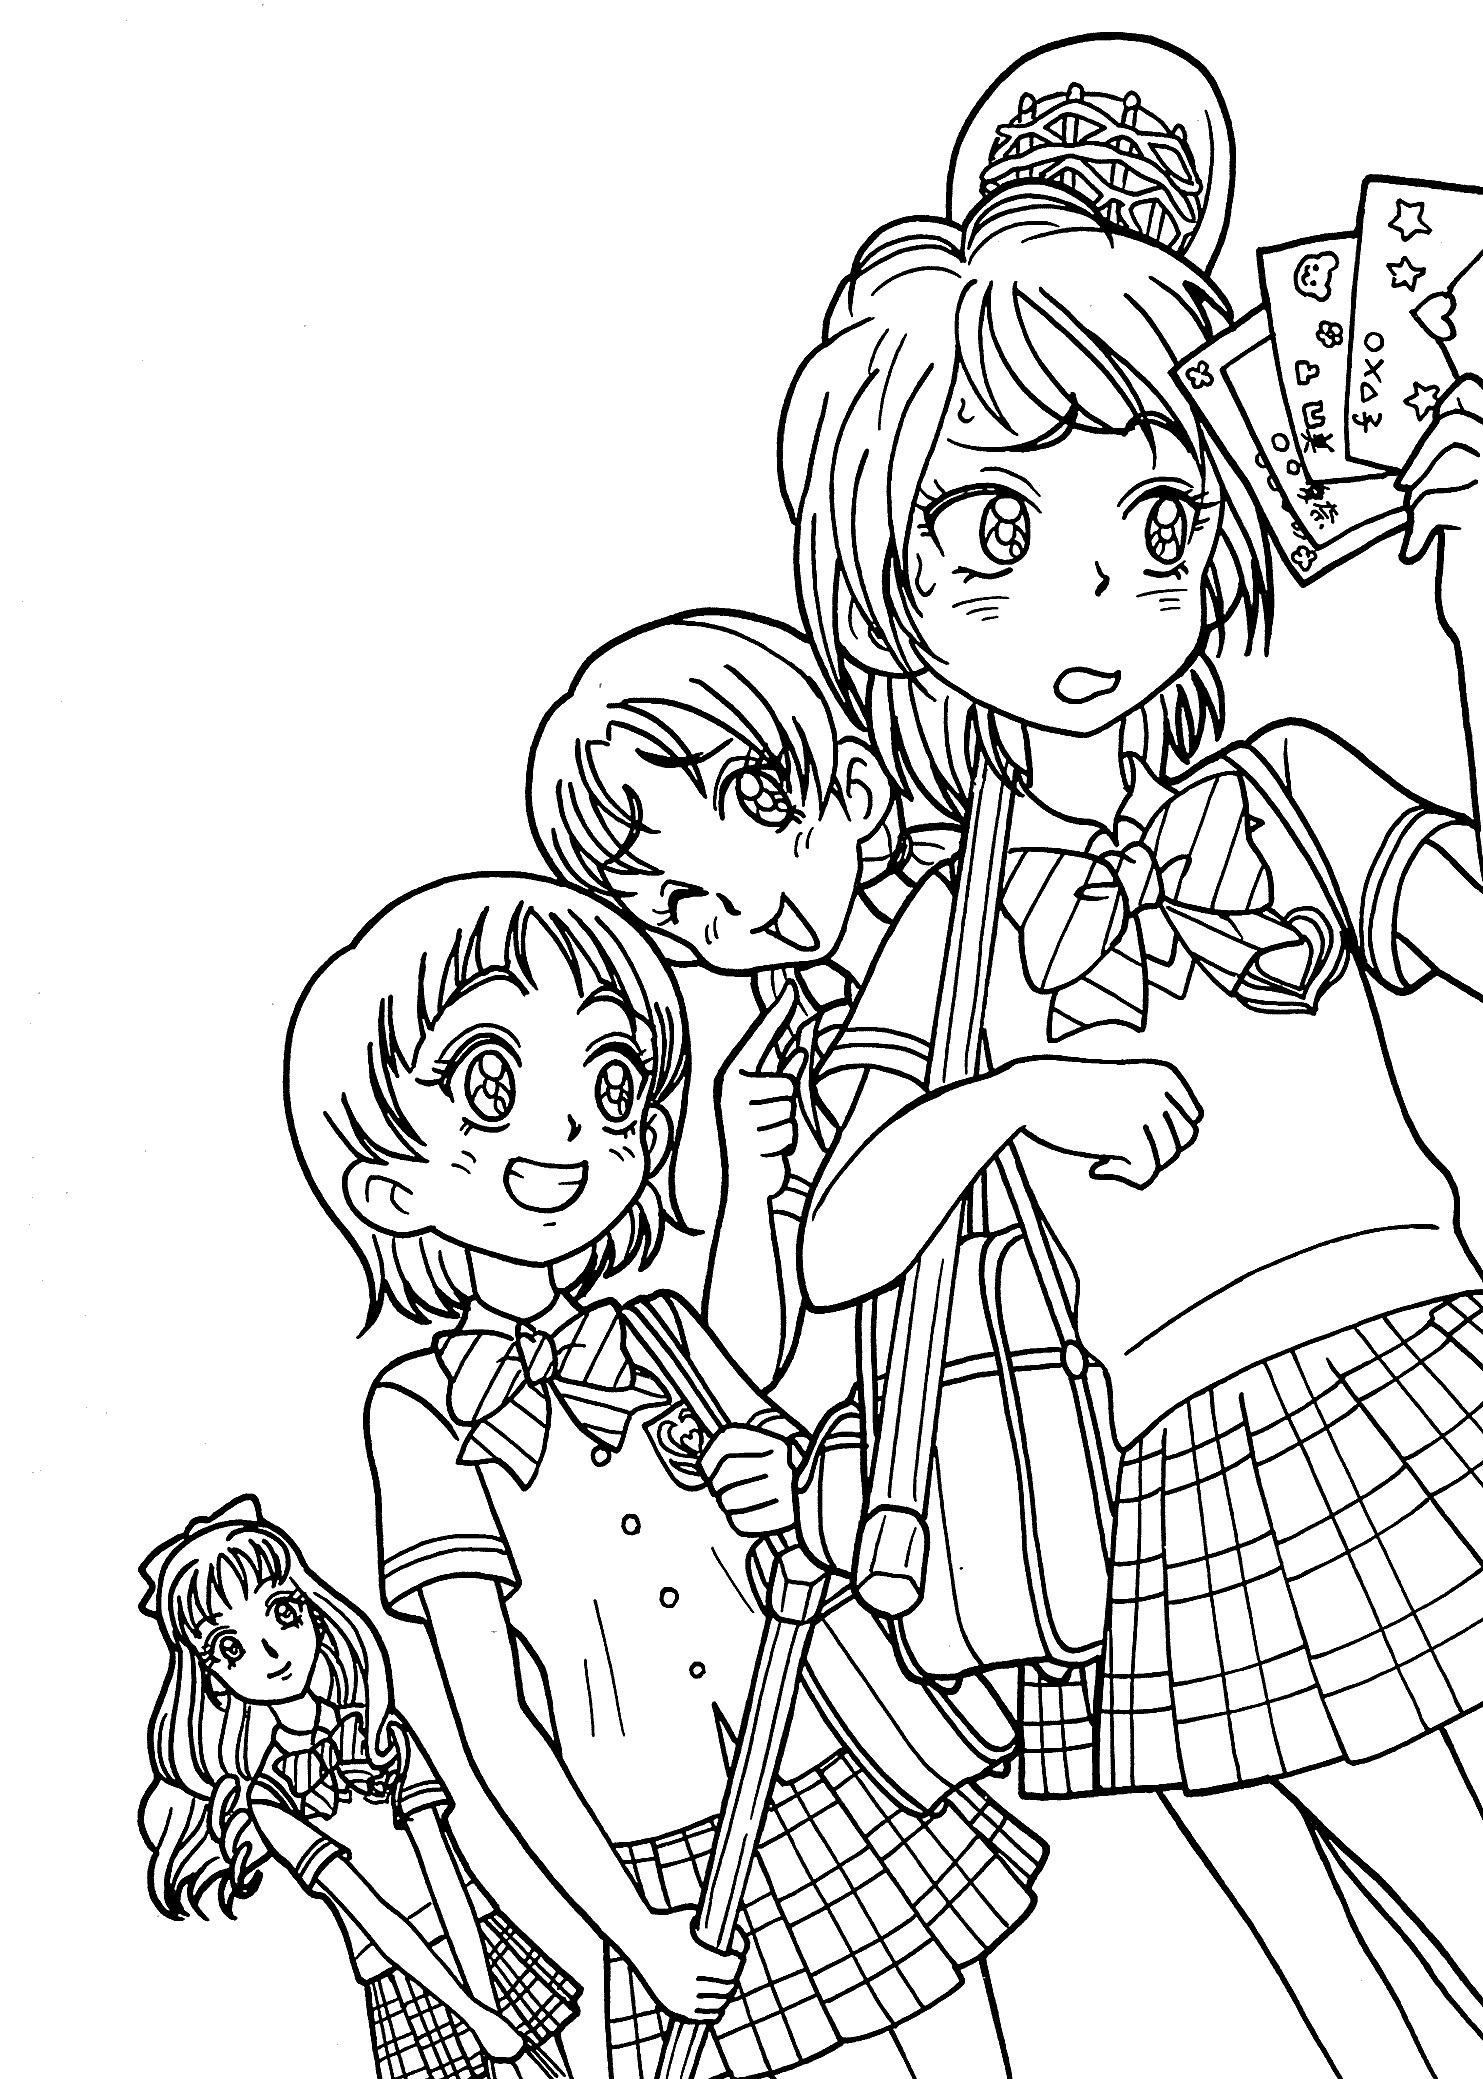 Coloring Page Anime Characters Coloring Page Pedia to Print Free to Print Of Free Coloring Pages Printable New Kilari and Seiji Anime Coloring Printable